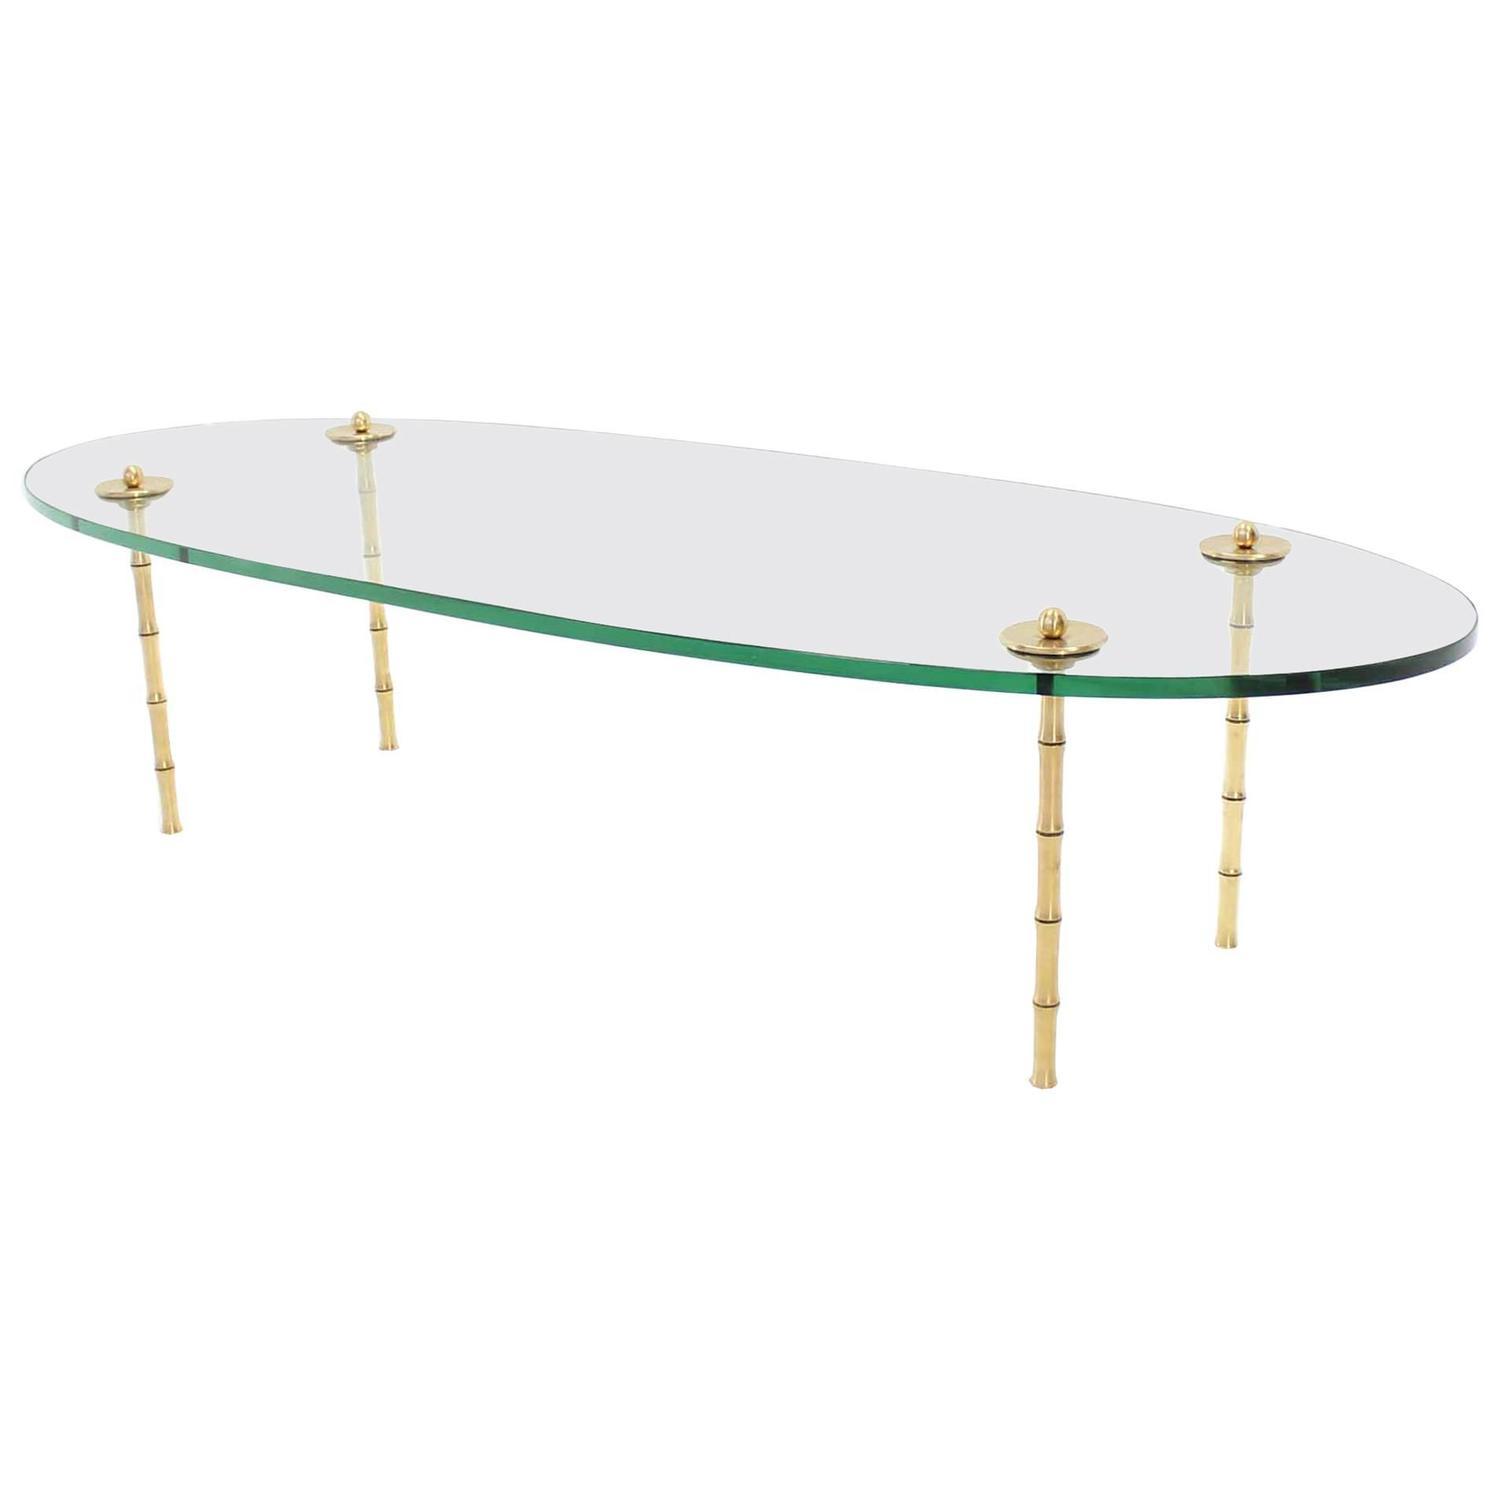 Oval Marble Top Coffee Table with Brass Legs at 1stdibs